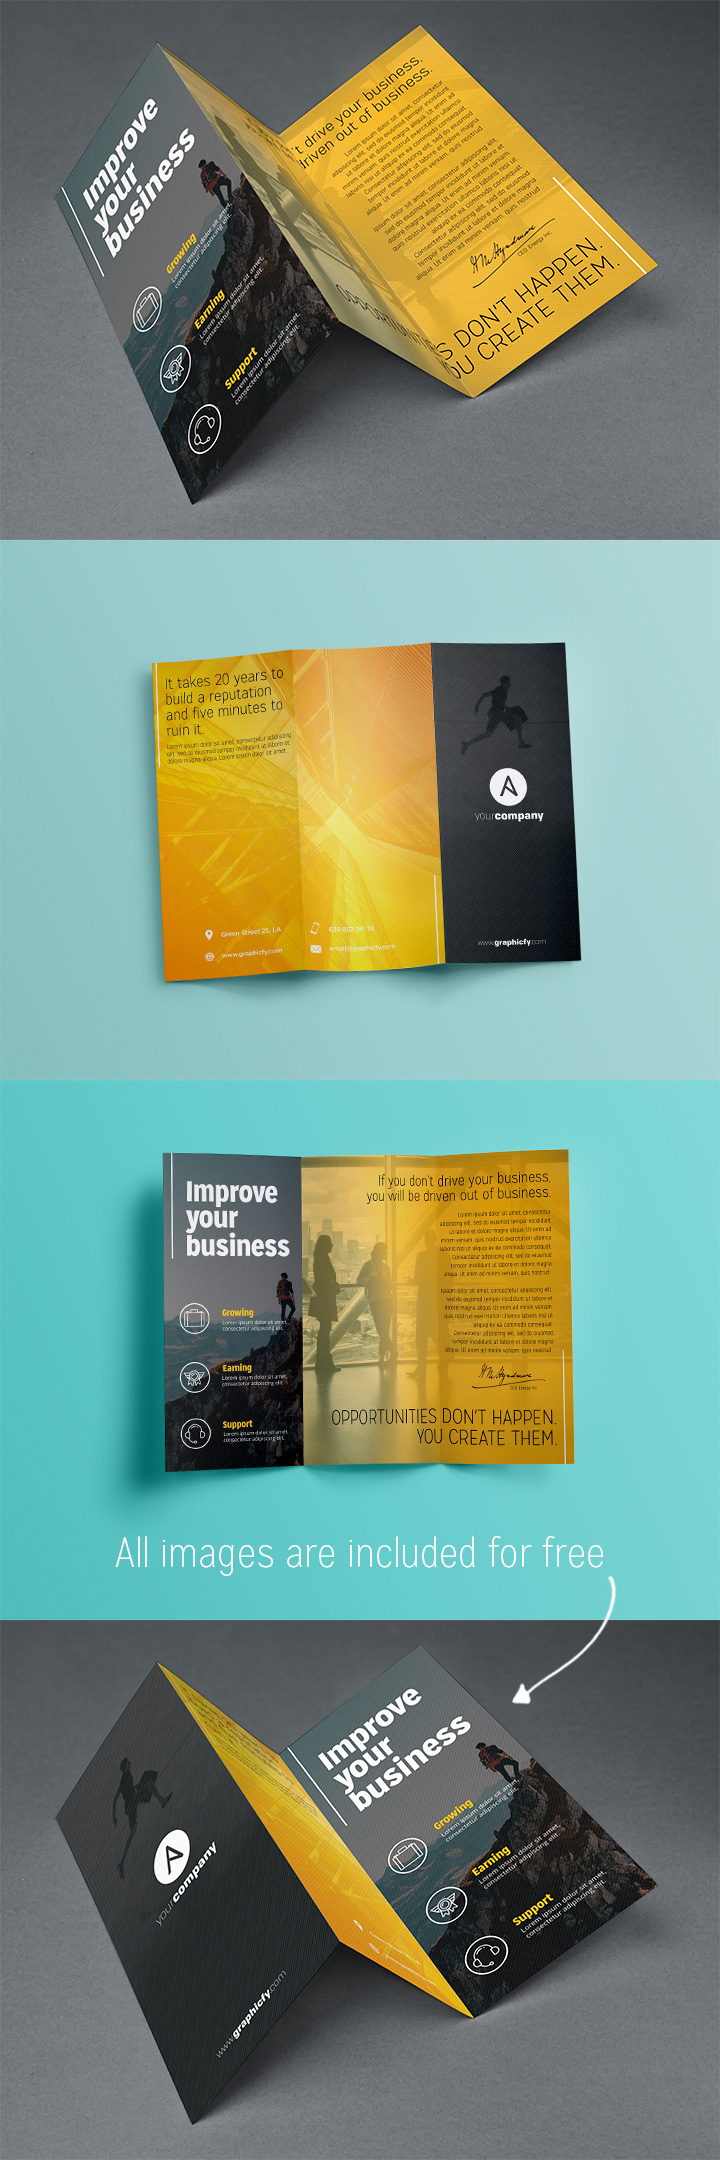 Tri fold brochure template psd brochure templates for Tri fold brochure template psd